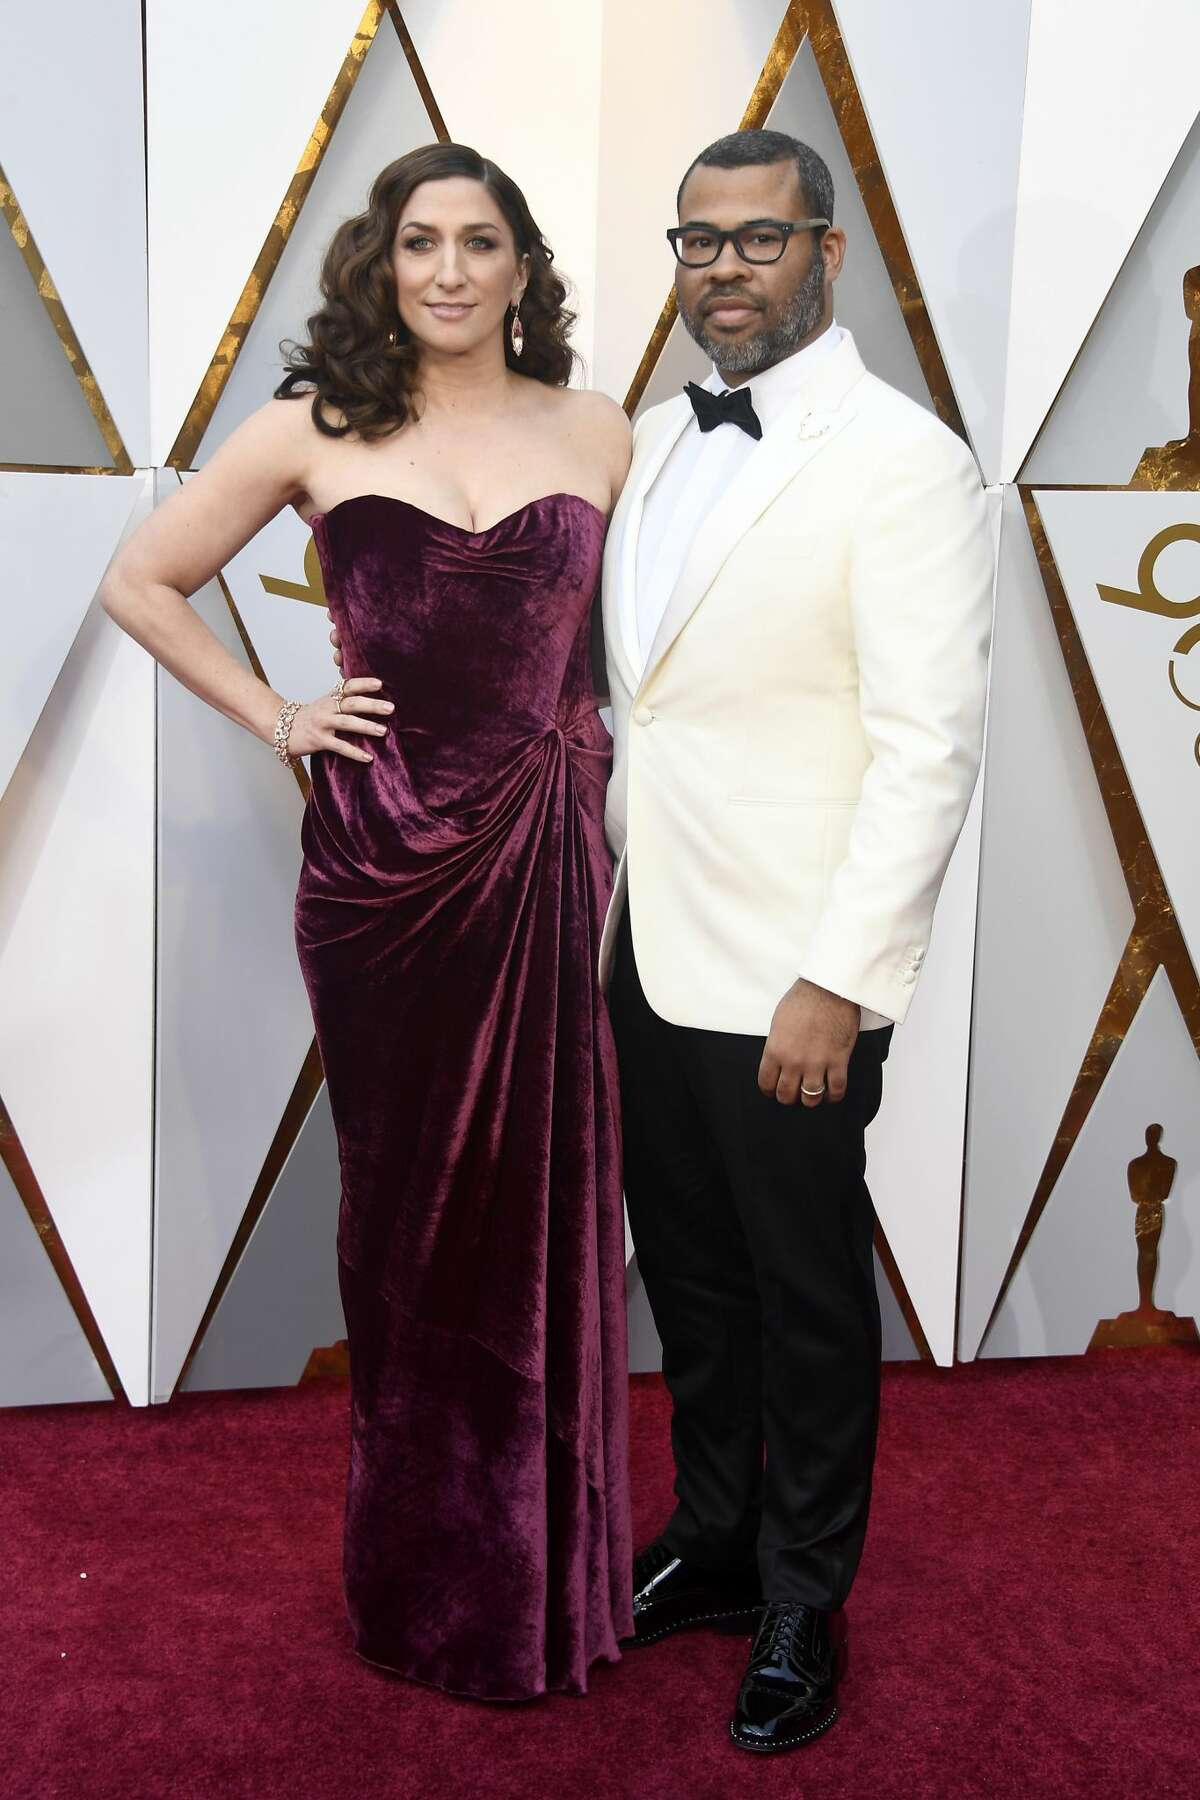 Chelsea Peretti (L) and husband Jordan Peele attend the 90th Annual Academy Awards at Hollywood & Highland Center on March 4, 2018.